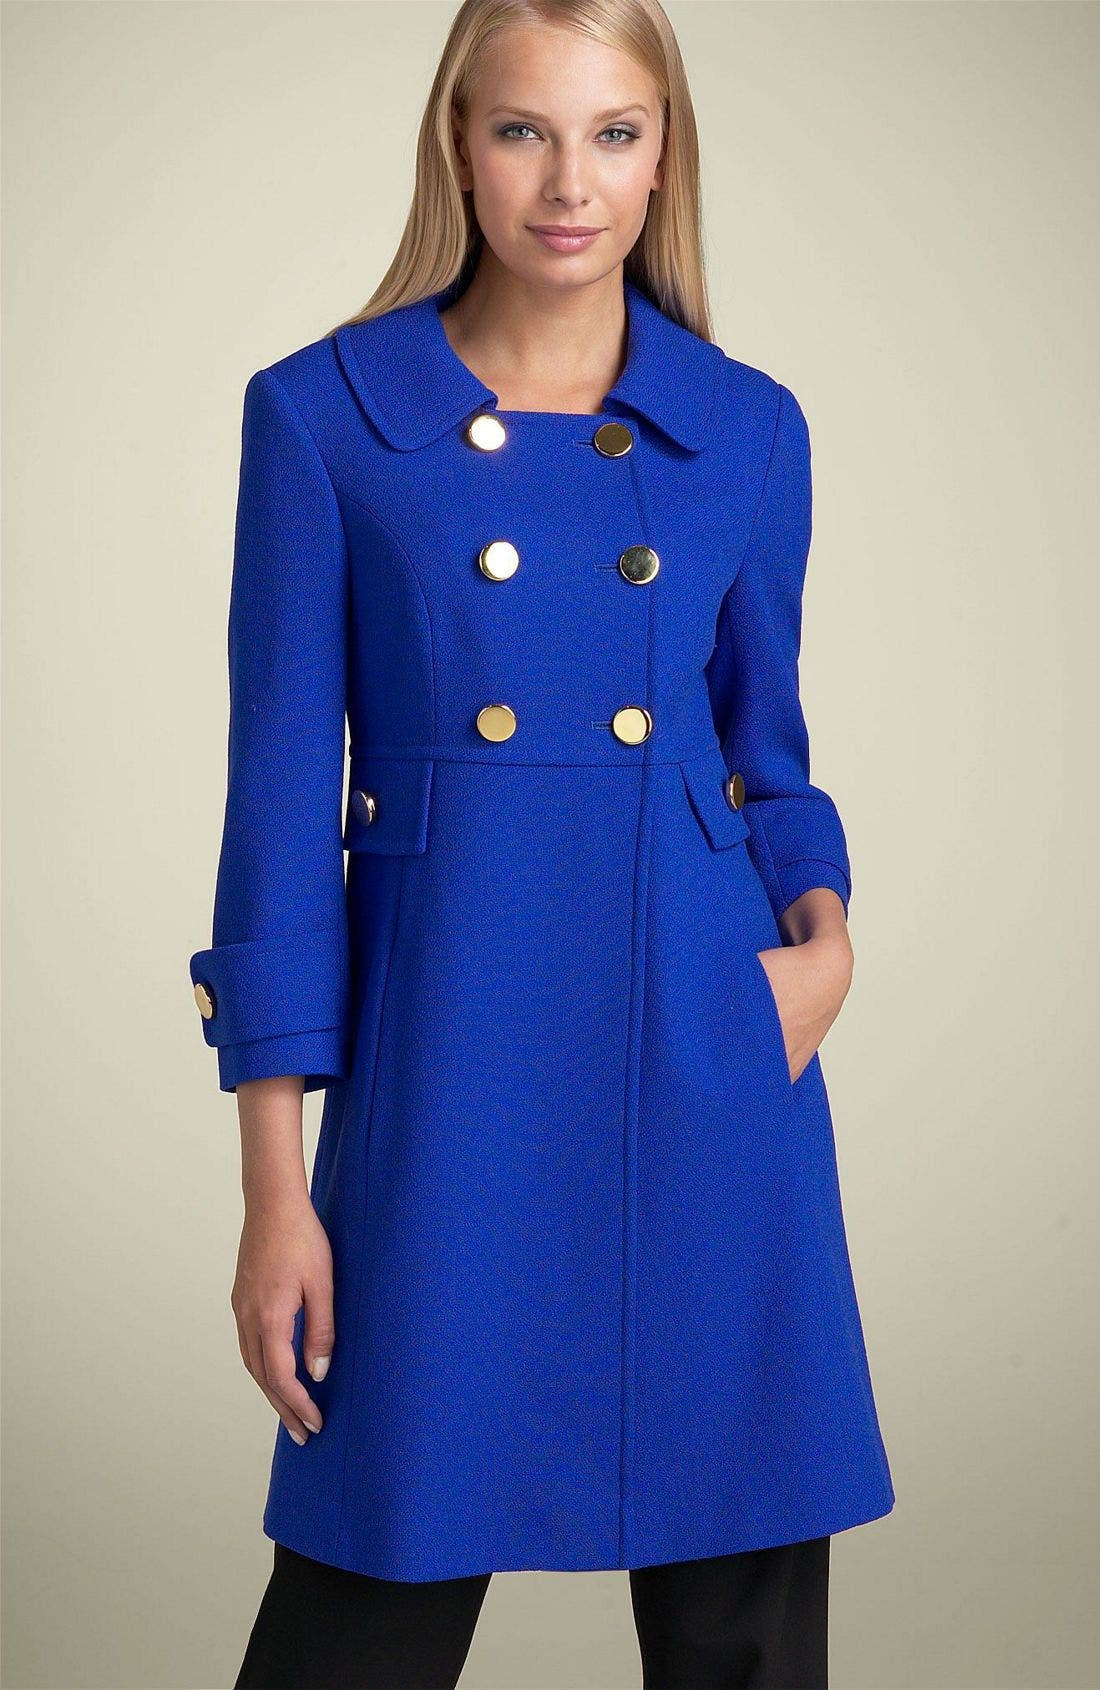 Charles Gray Wool Princess Coat,                             Main thumbnail 1, color,                             460